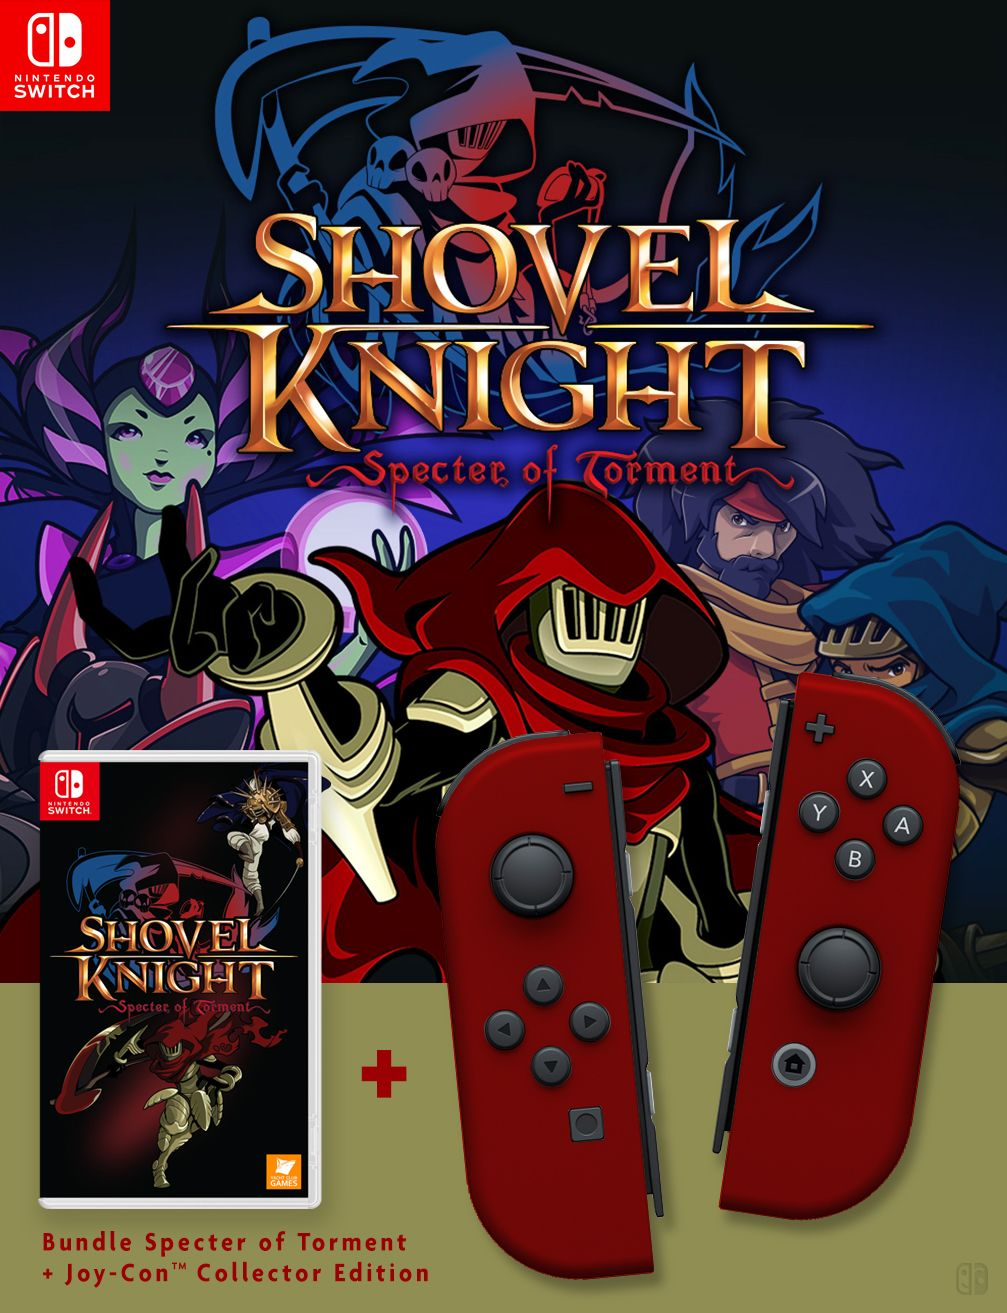 Shovel Knight : Specter of Torment. Nintendo Joy-Con Collector Nintendo Switch (A Switch Me fan art). If U like it, follow me on Twitter : @switchmelike ! joycon, nintendo switch, dock, joy-con, Joy-Con Strap